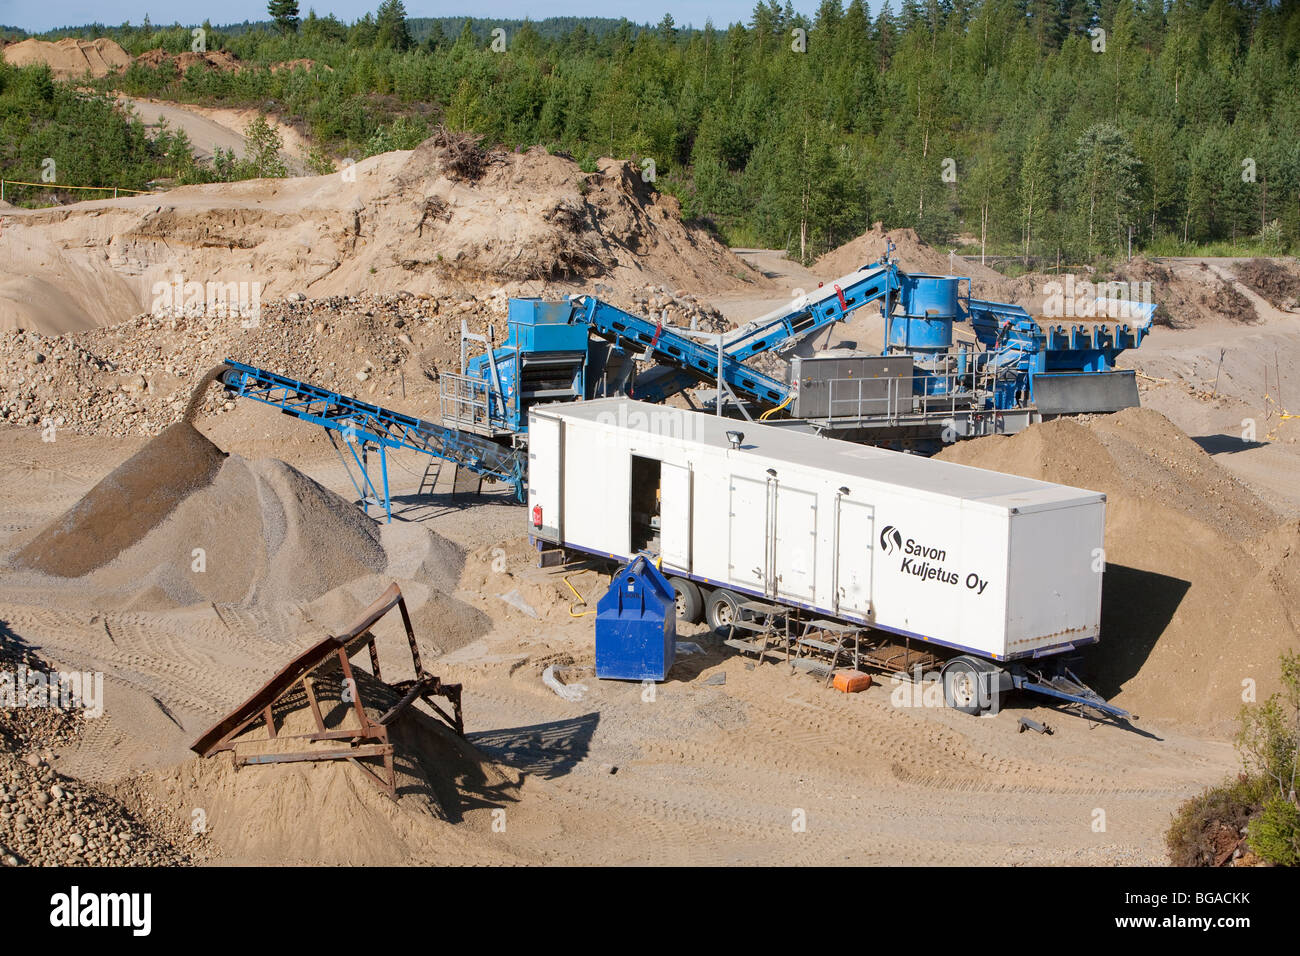 Sand and gravel extraction equipment at the bottom of a sandpit , Finland - Stock Image